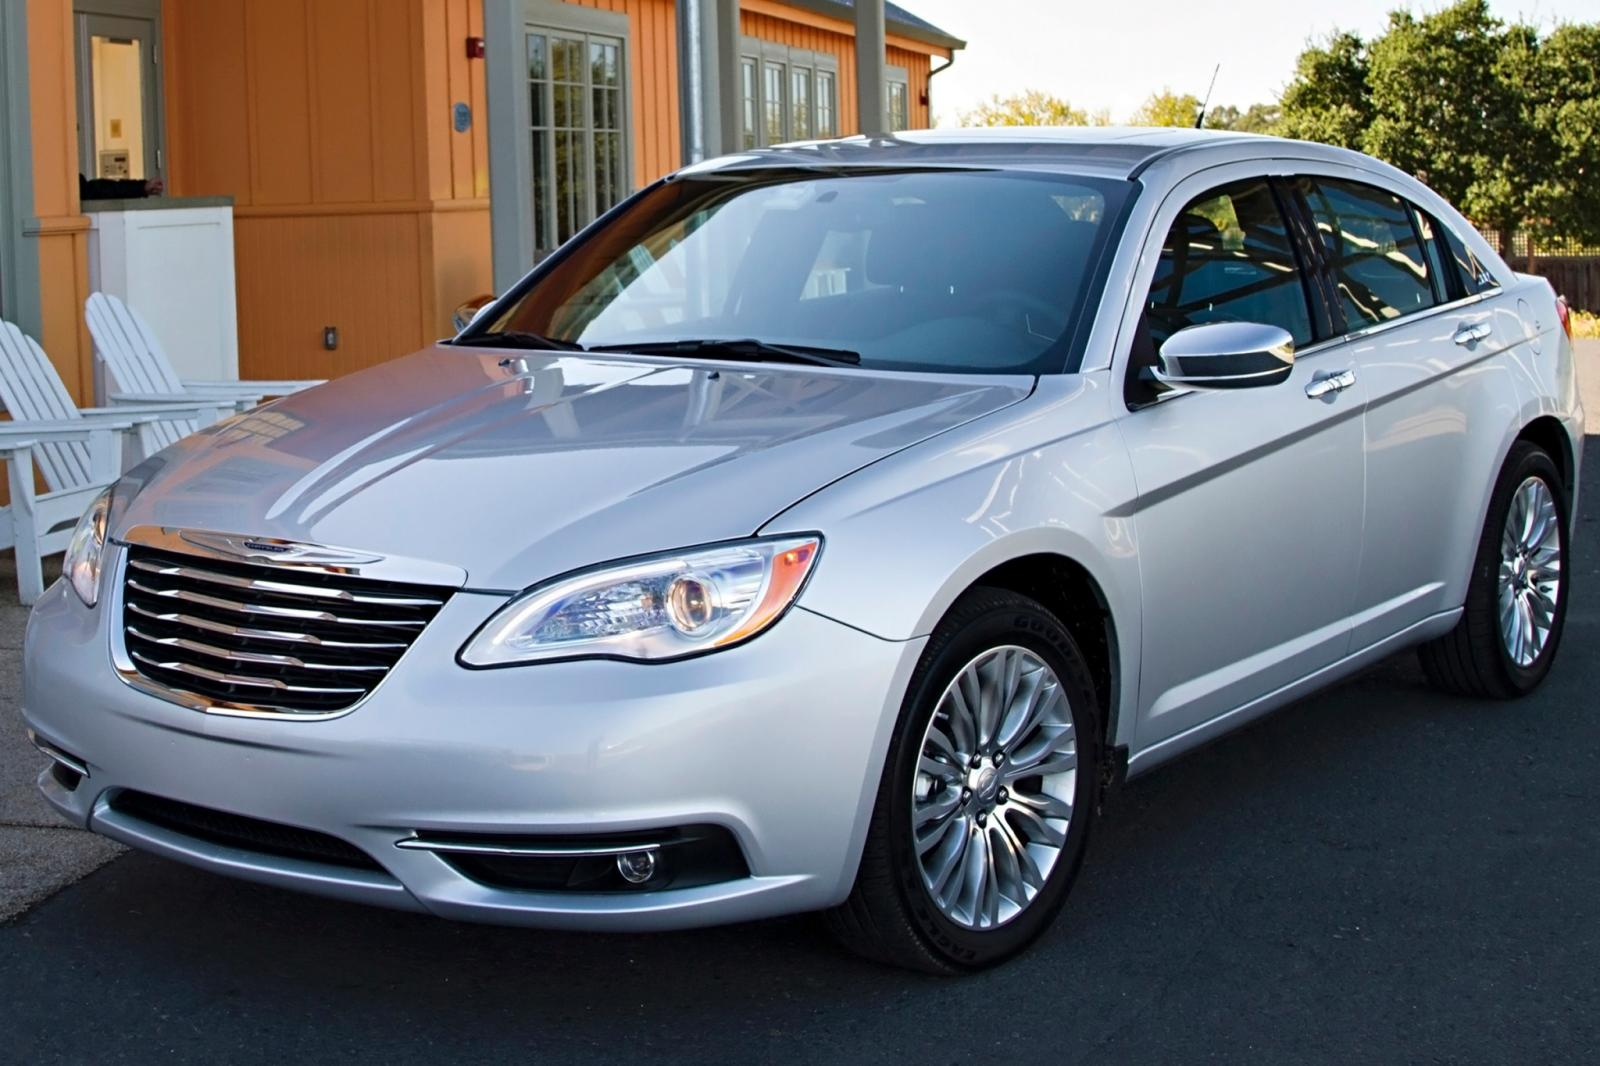 2013 chrysler 200 information and photos zombiedrive. Black Bedroom Furniture Sets. Home Design Ideas